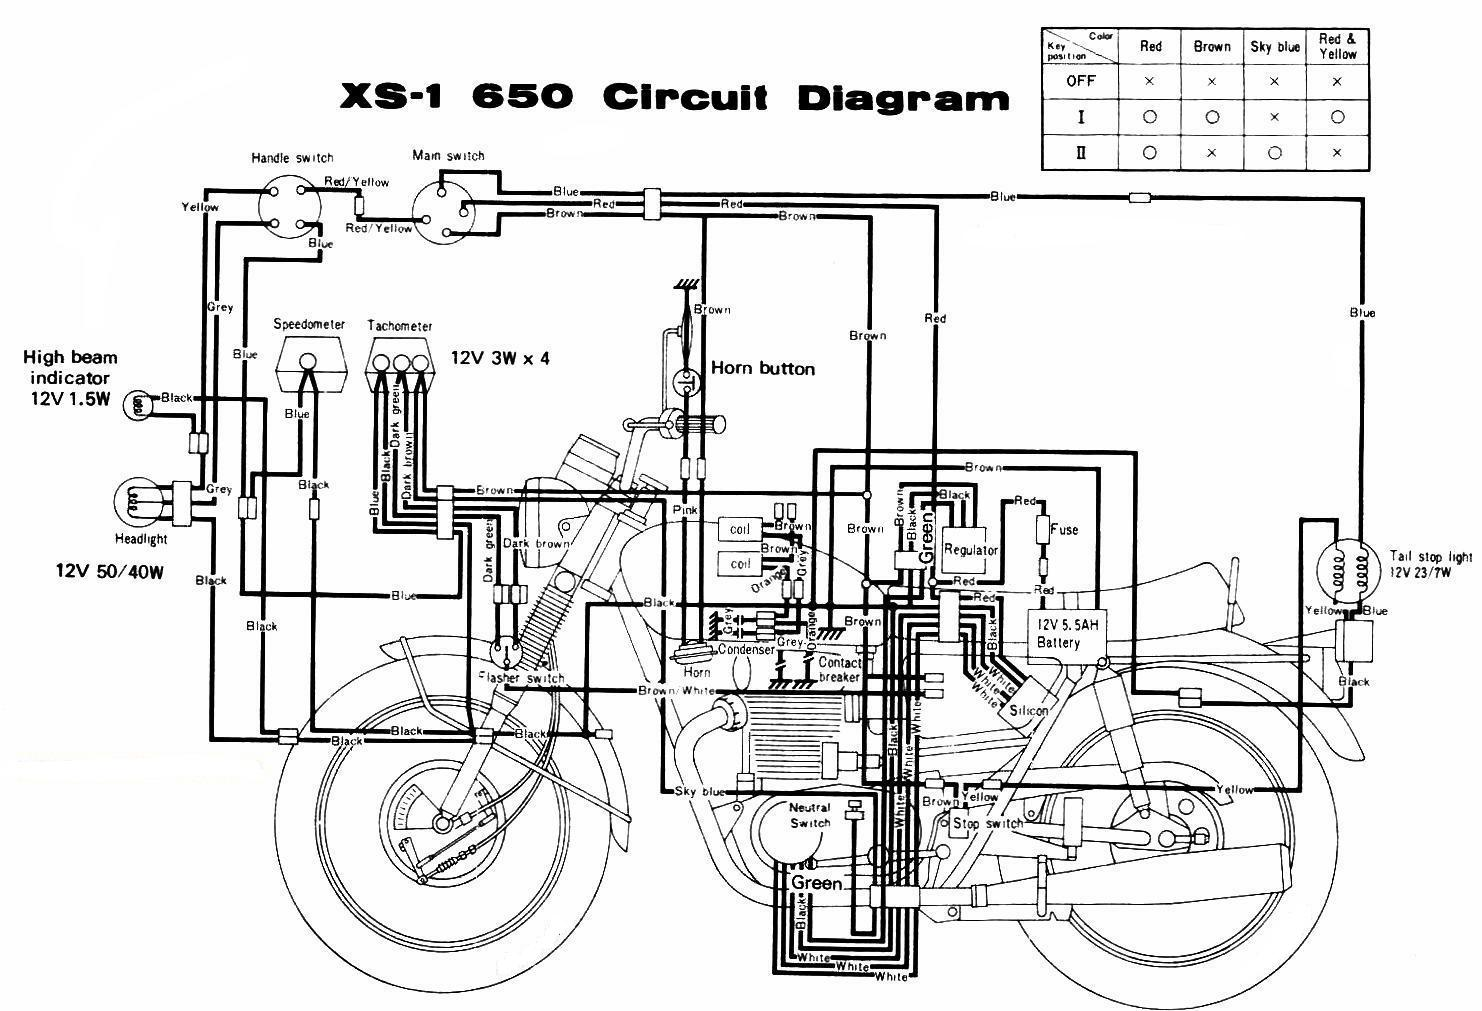 Wiring Diagrams R 1100 Gs Electrical Circuit 1970 Xs1 Page 1